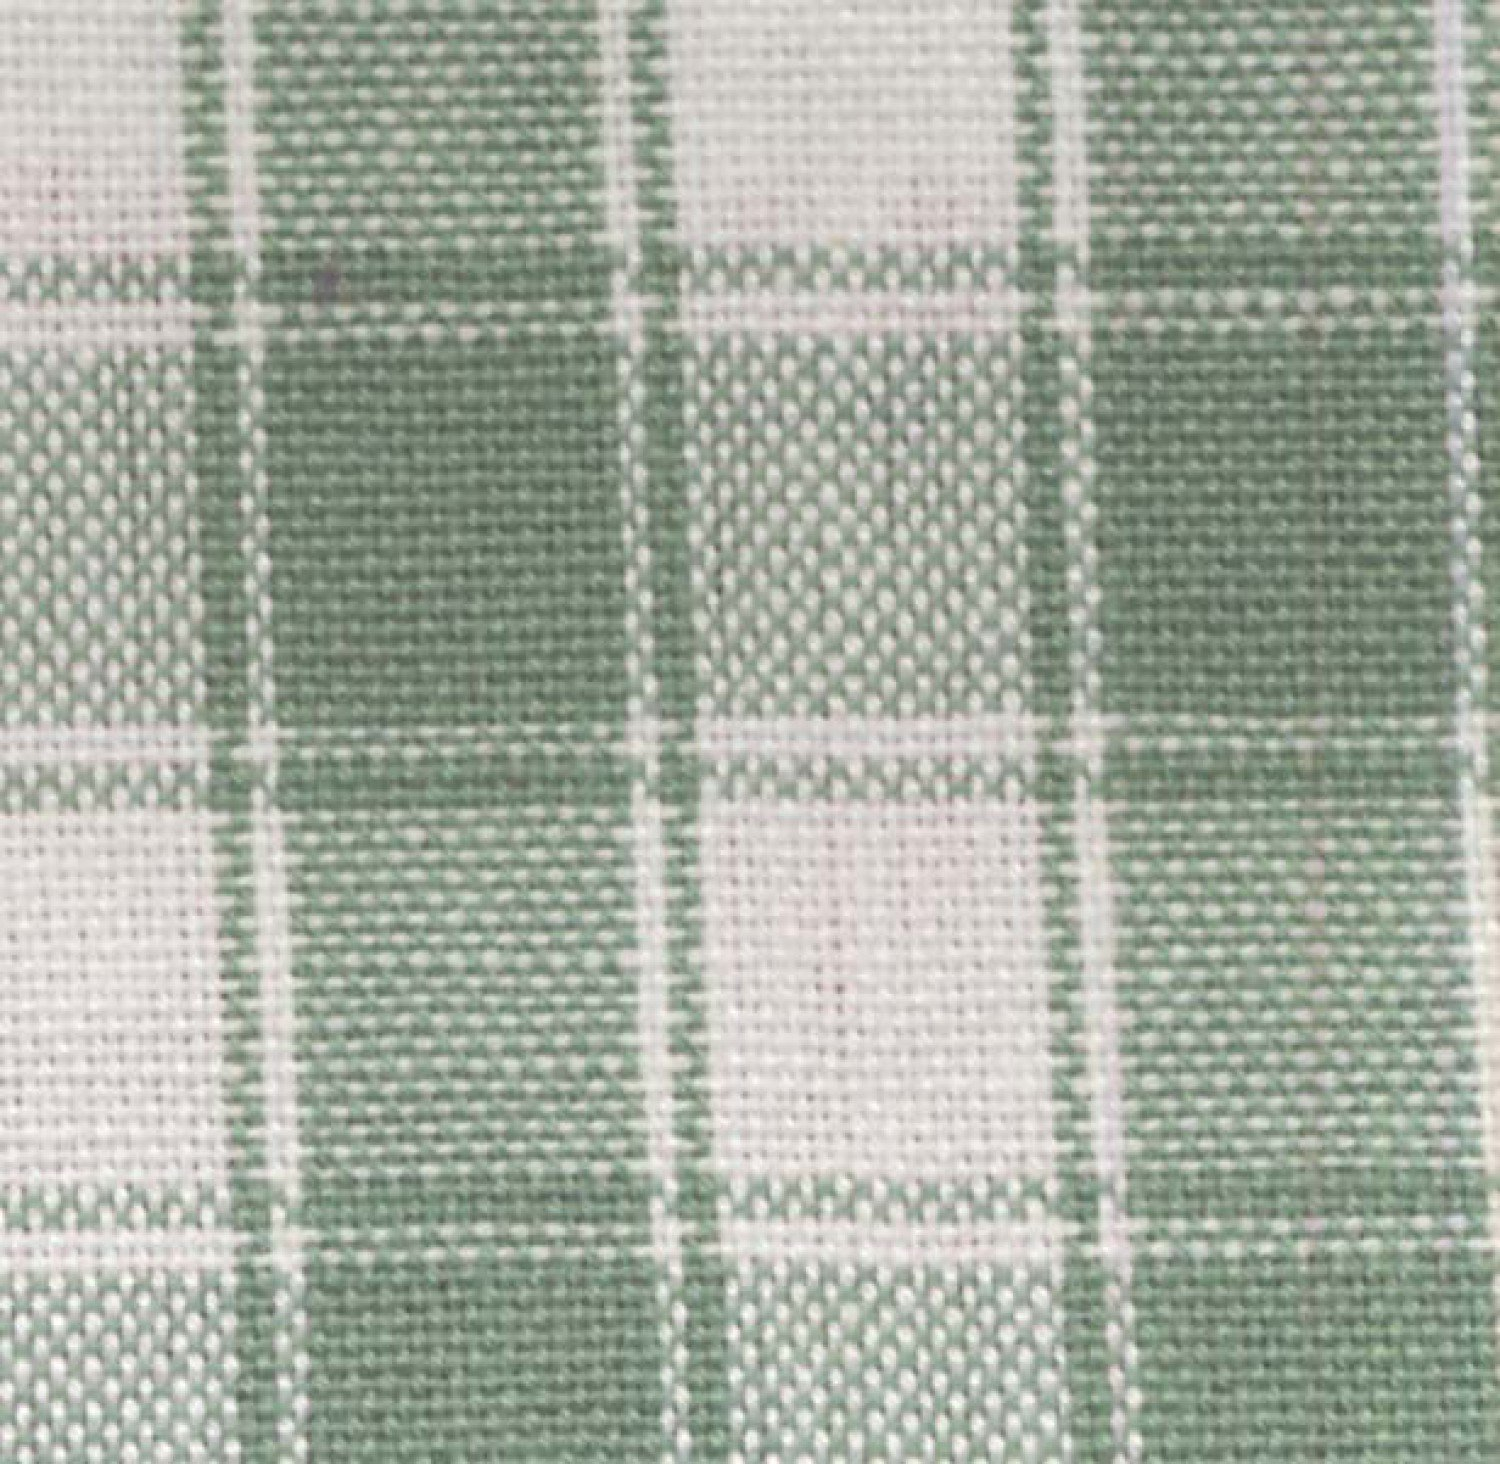 Tea Towel House Check Lt Green/White